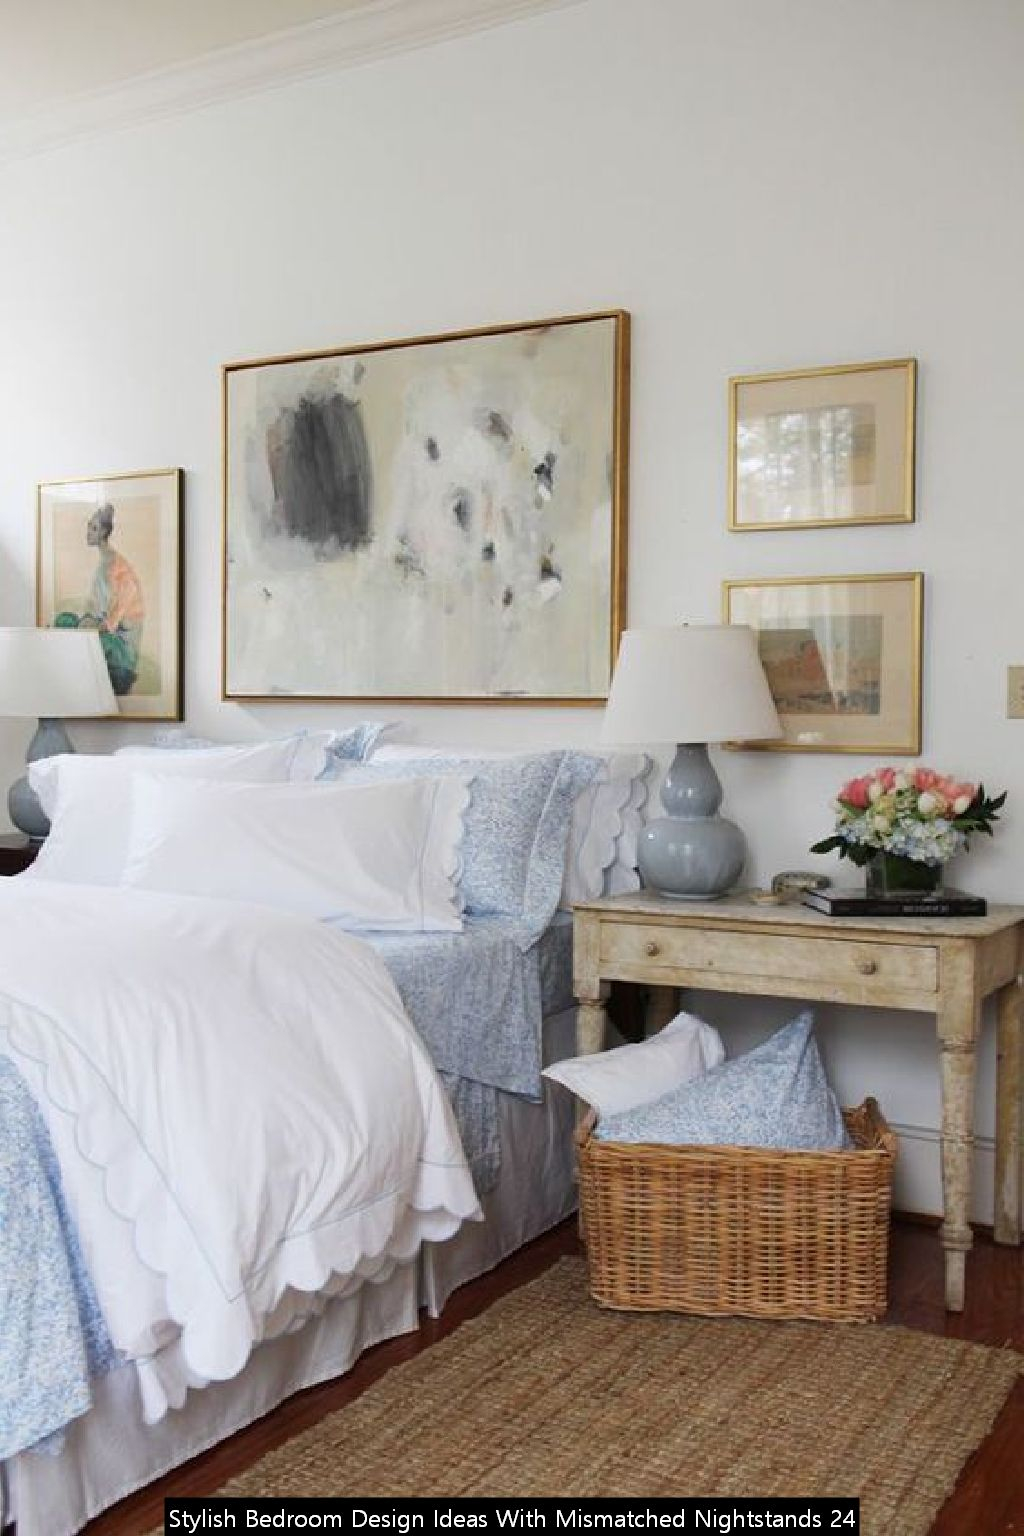 Stylish Bedroom Design Ideas With Mismatched Nightstands 24